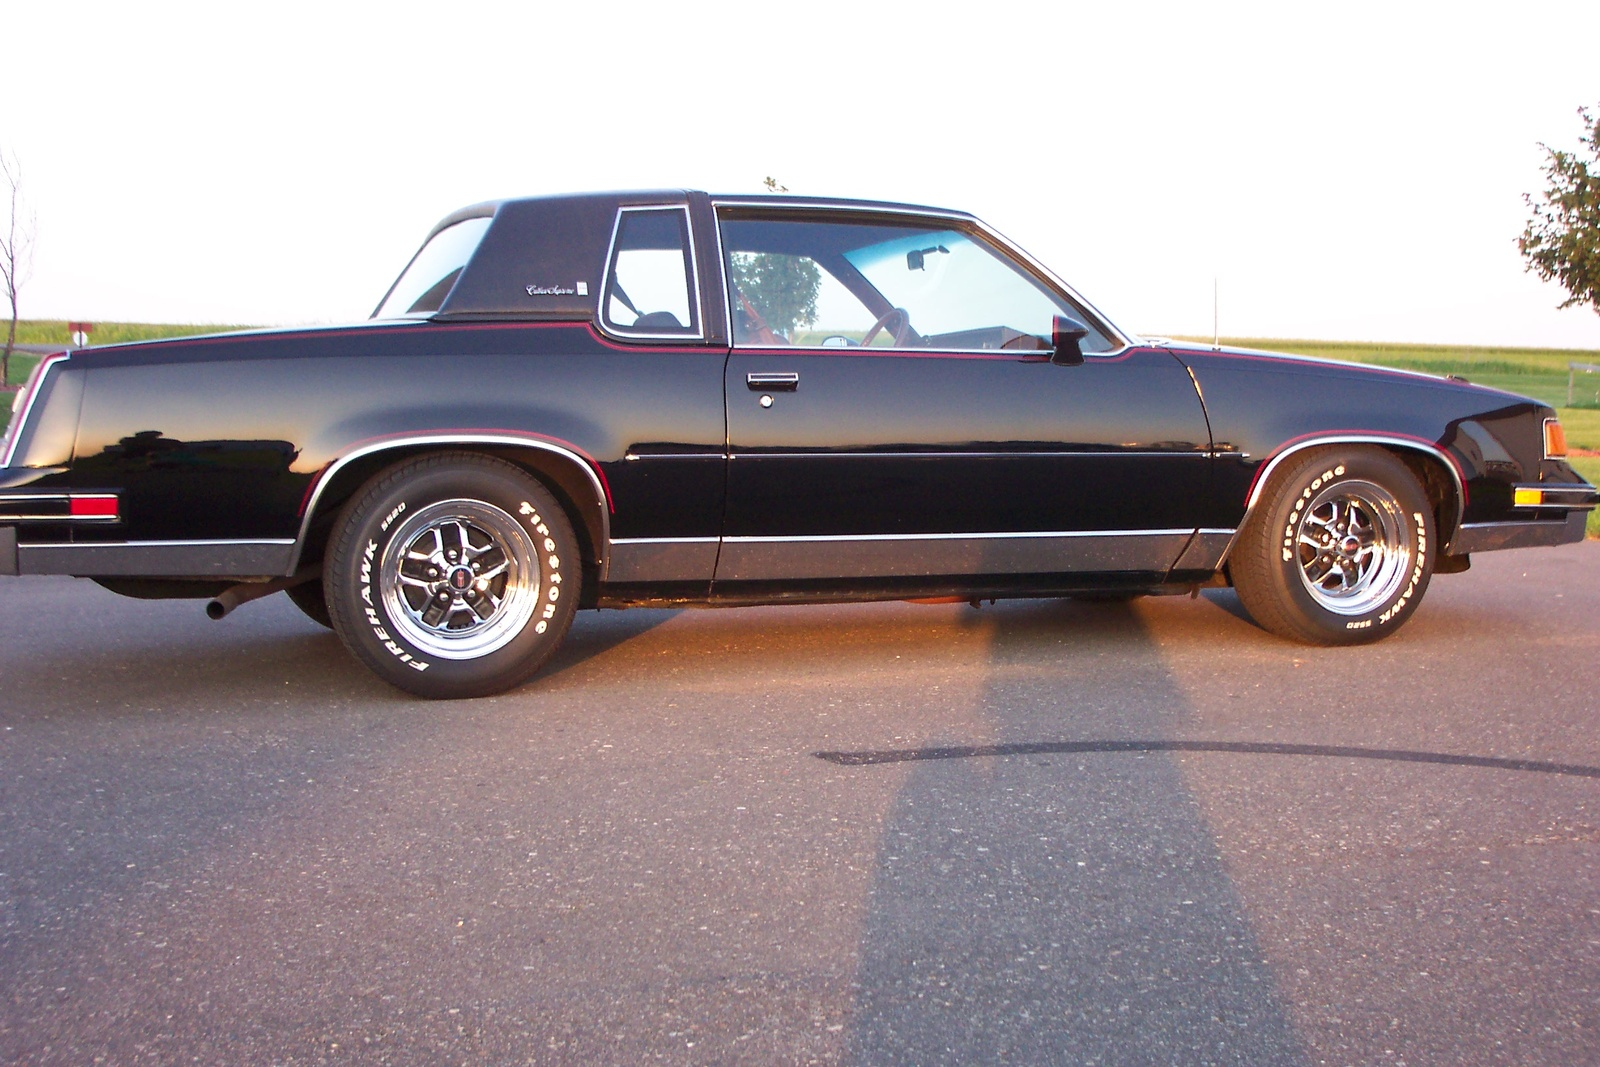 1987 Oldsmobile Cutlass Supreme picture, exterior